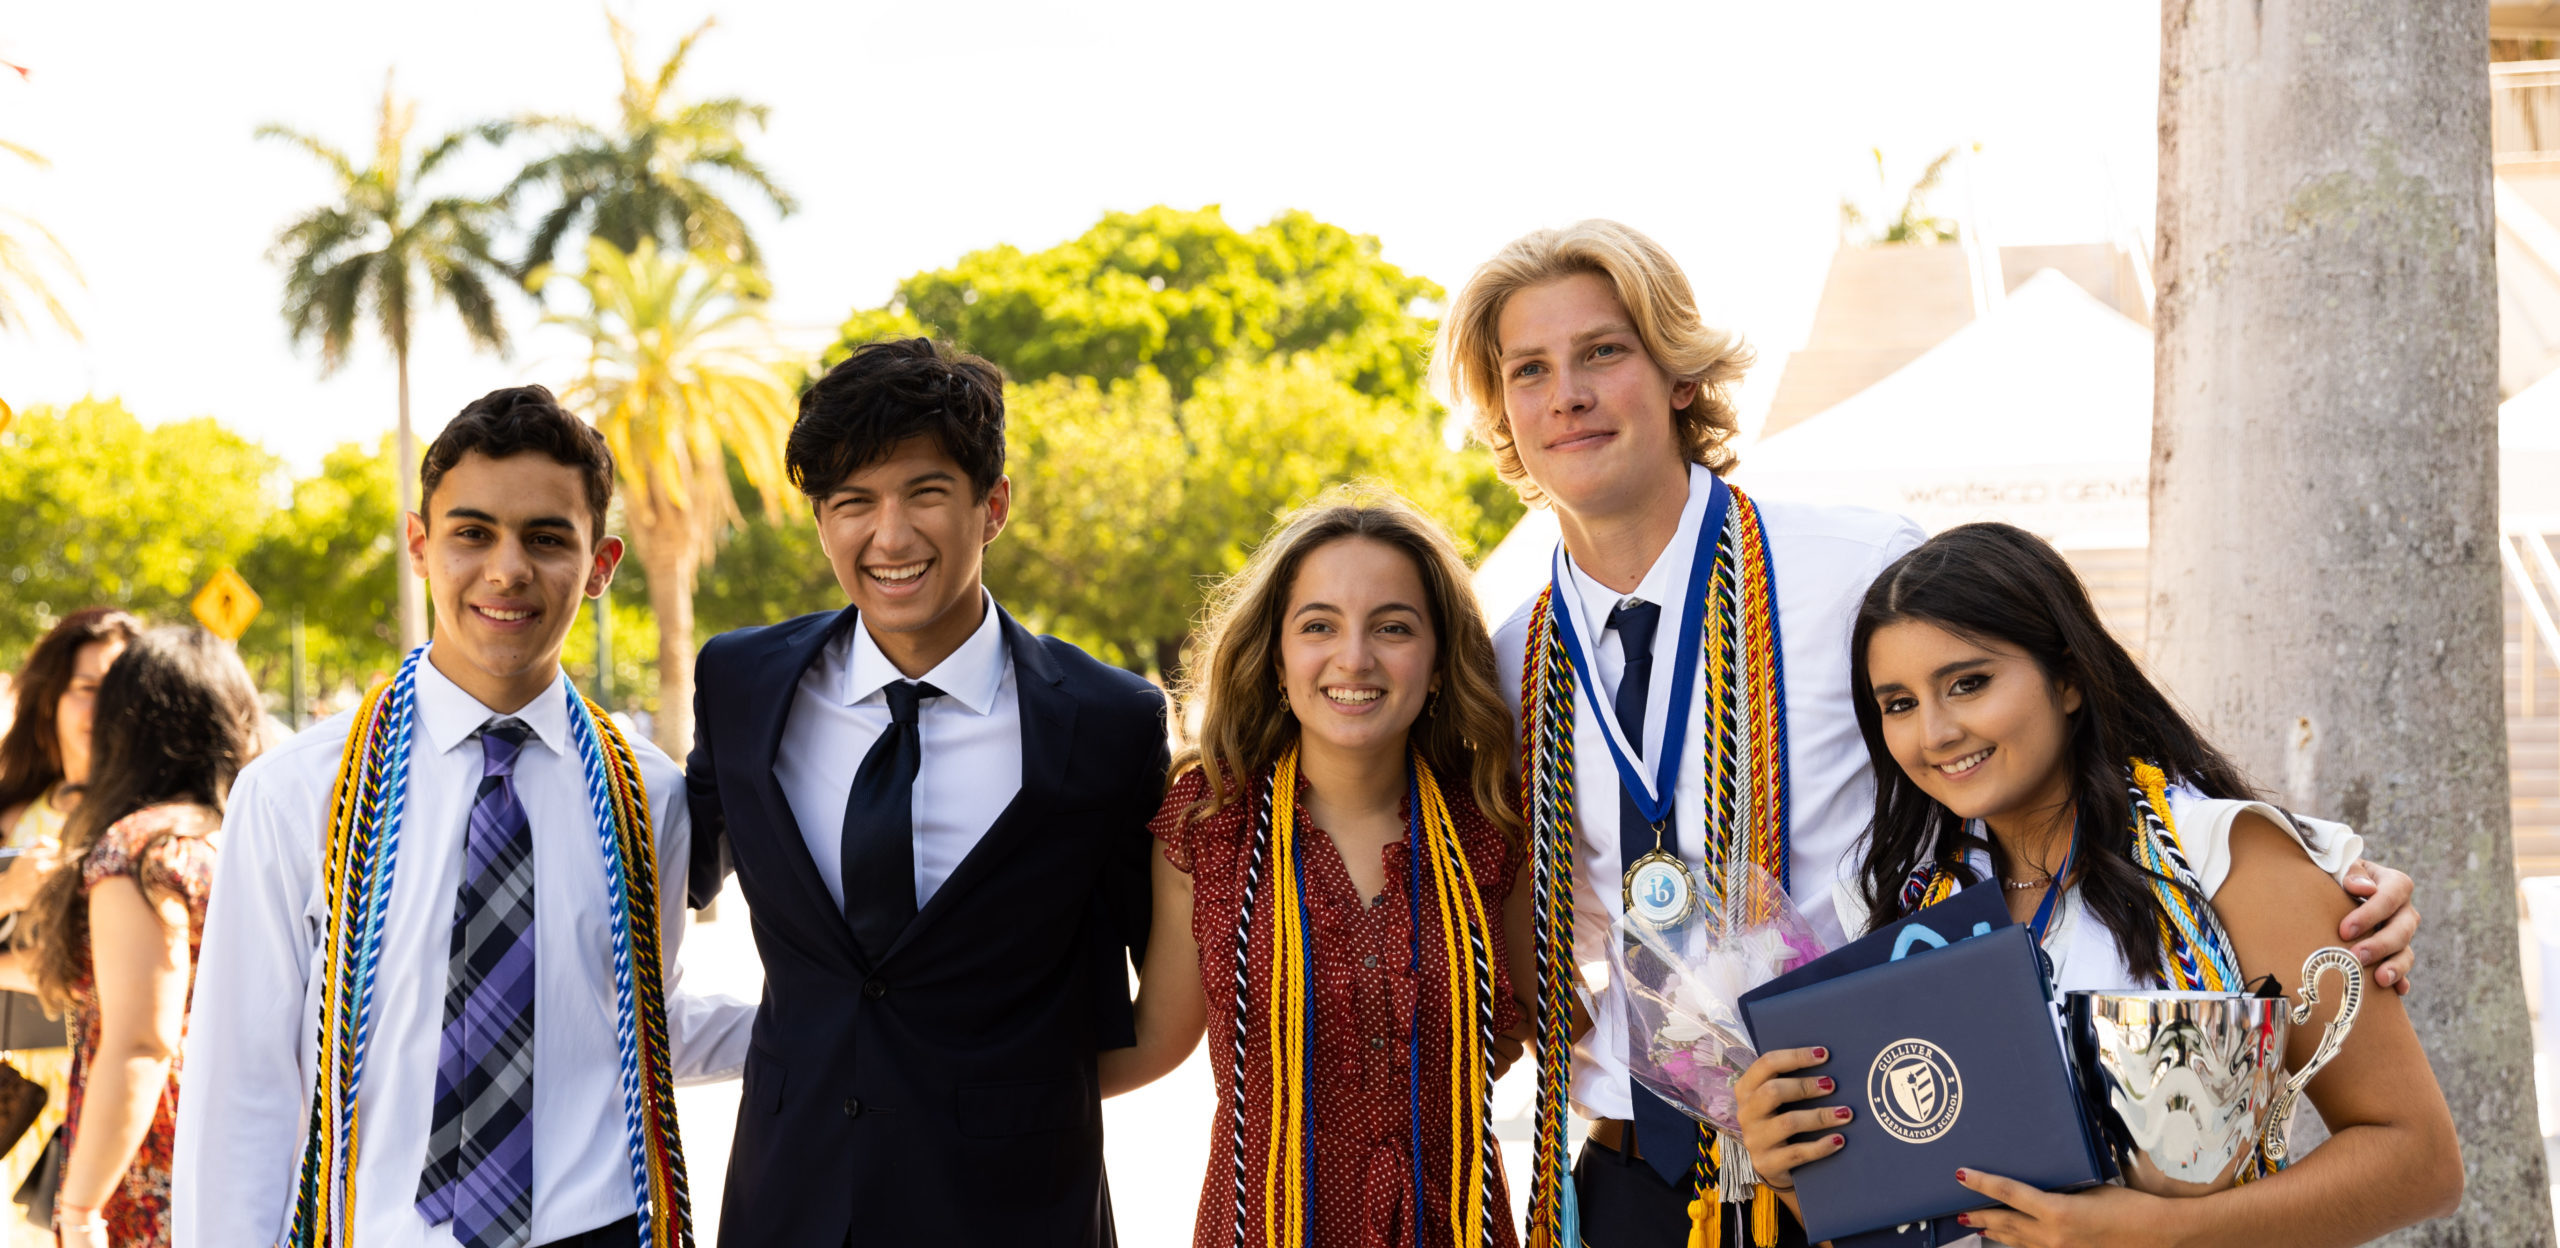 Five graduates smiling for a photo after commencement